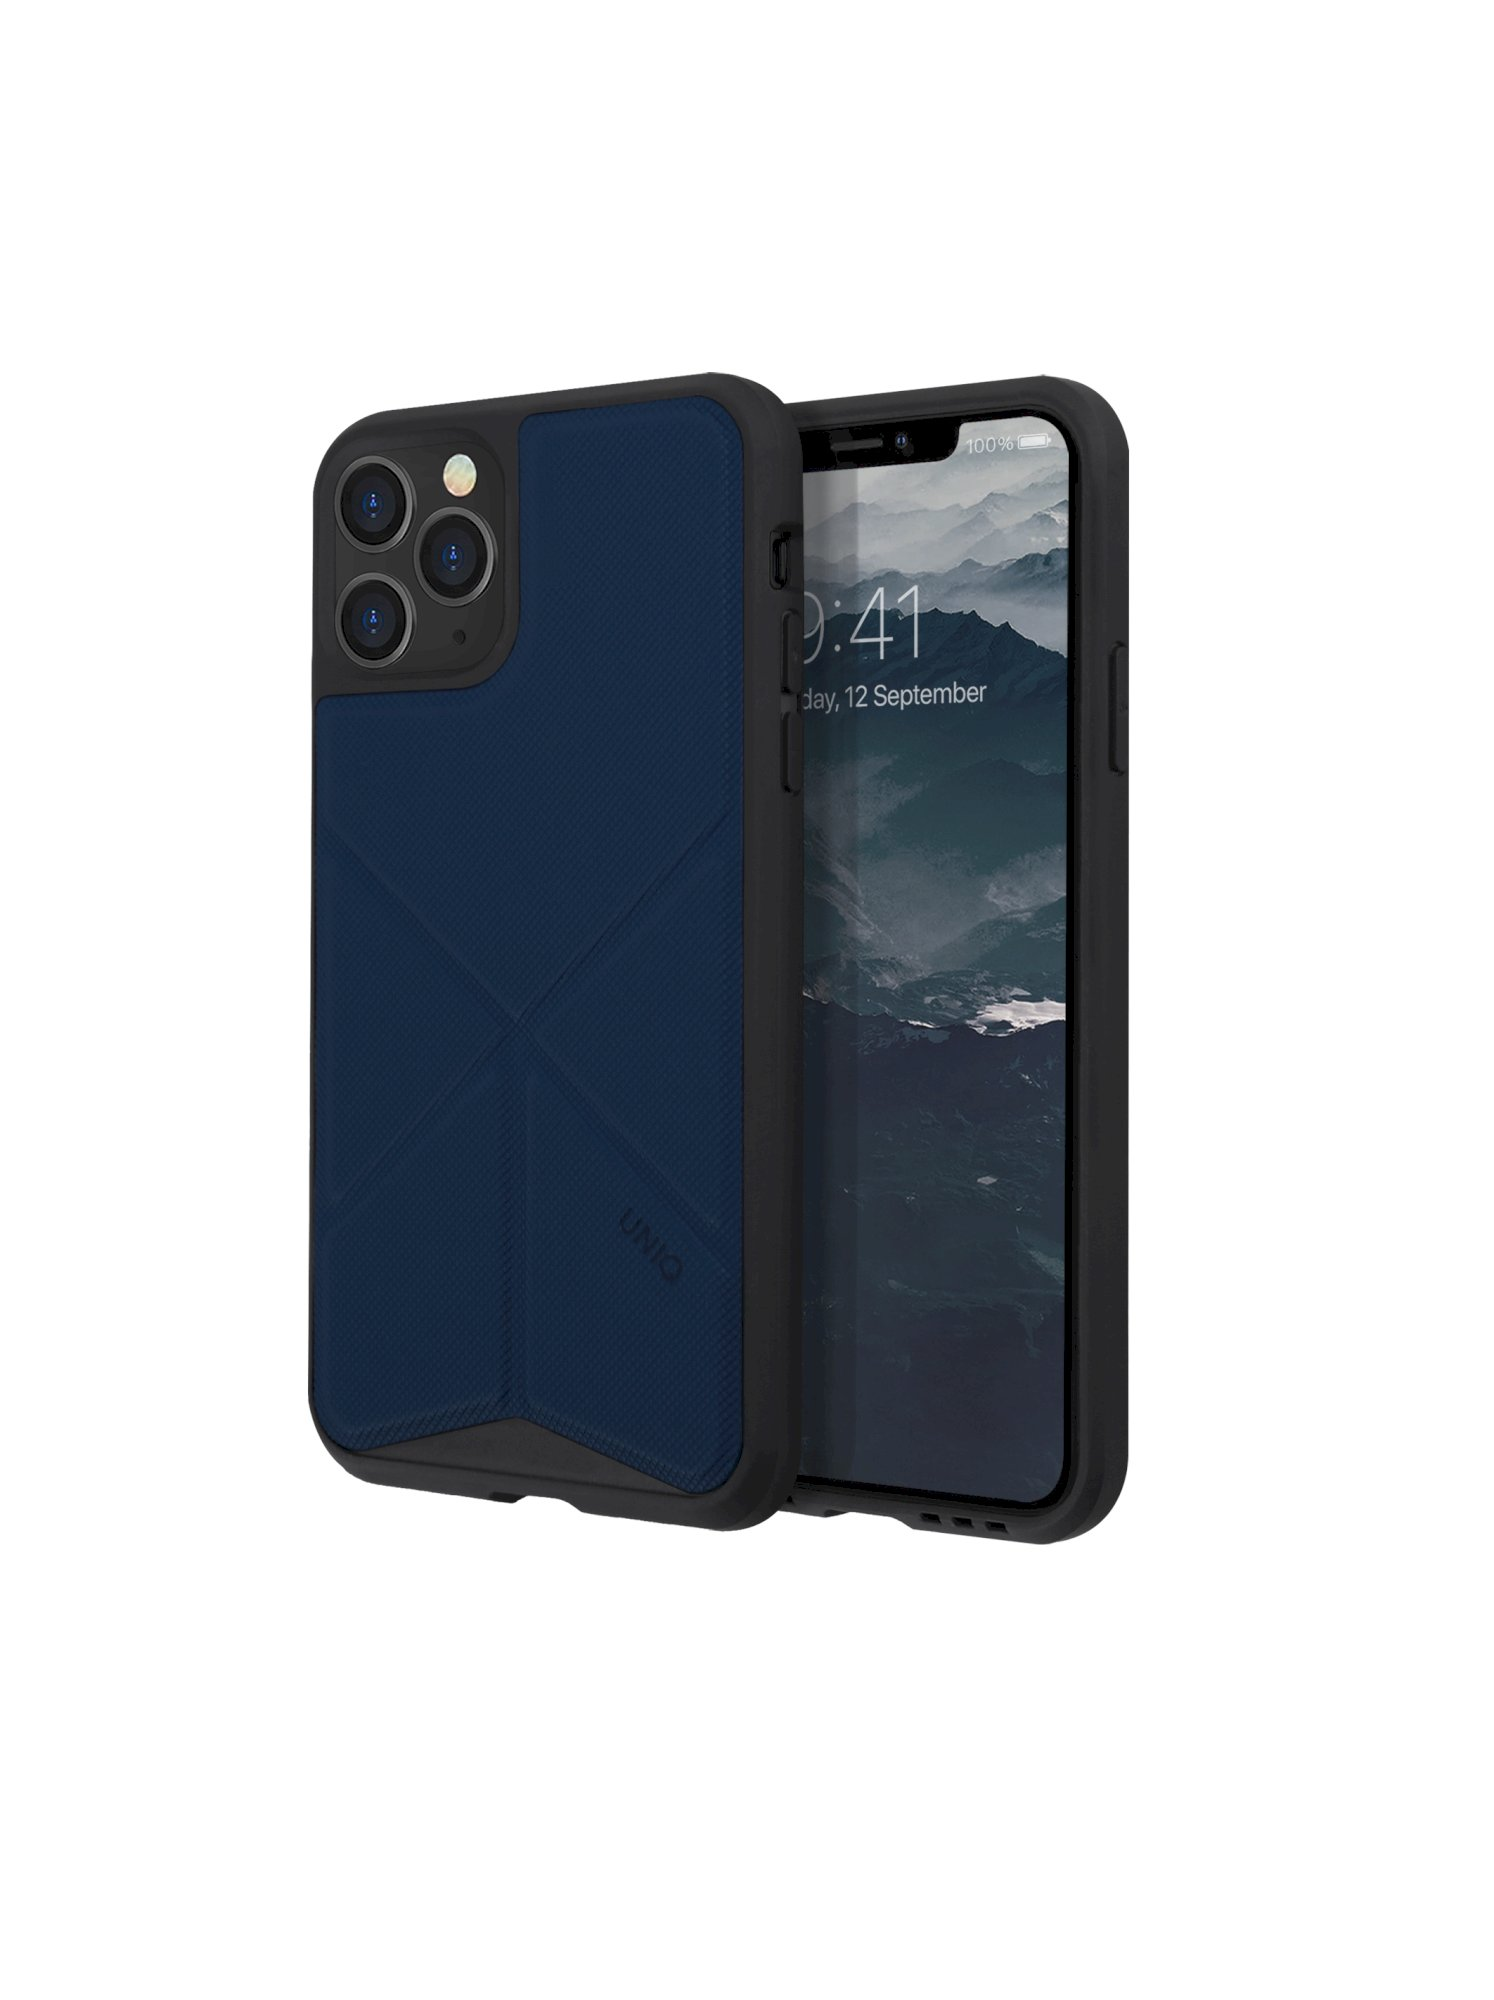 iPhone 11 Pro, case transforma, stand up navy panther, blue